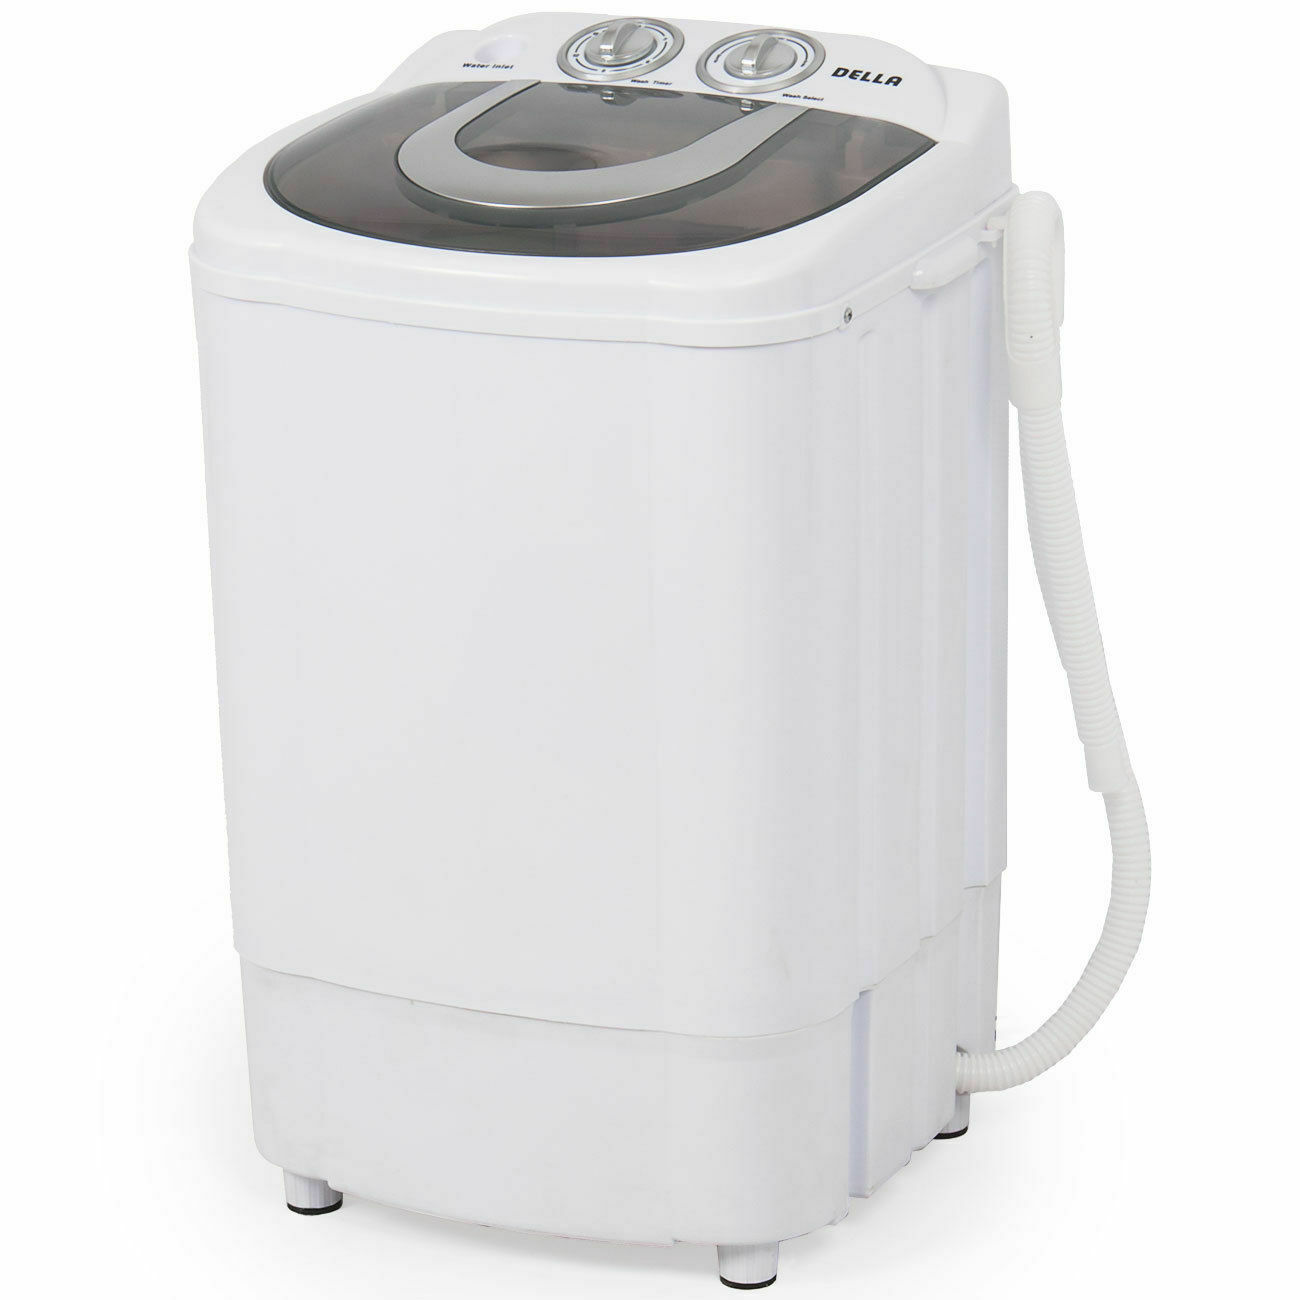 Mini Portable Washing Machine Spin Wash 8.8Lbs Capacity Comp